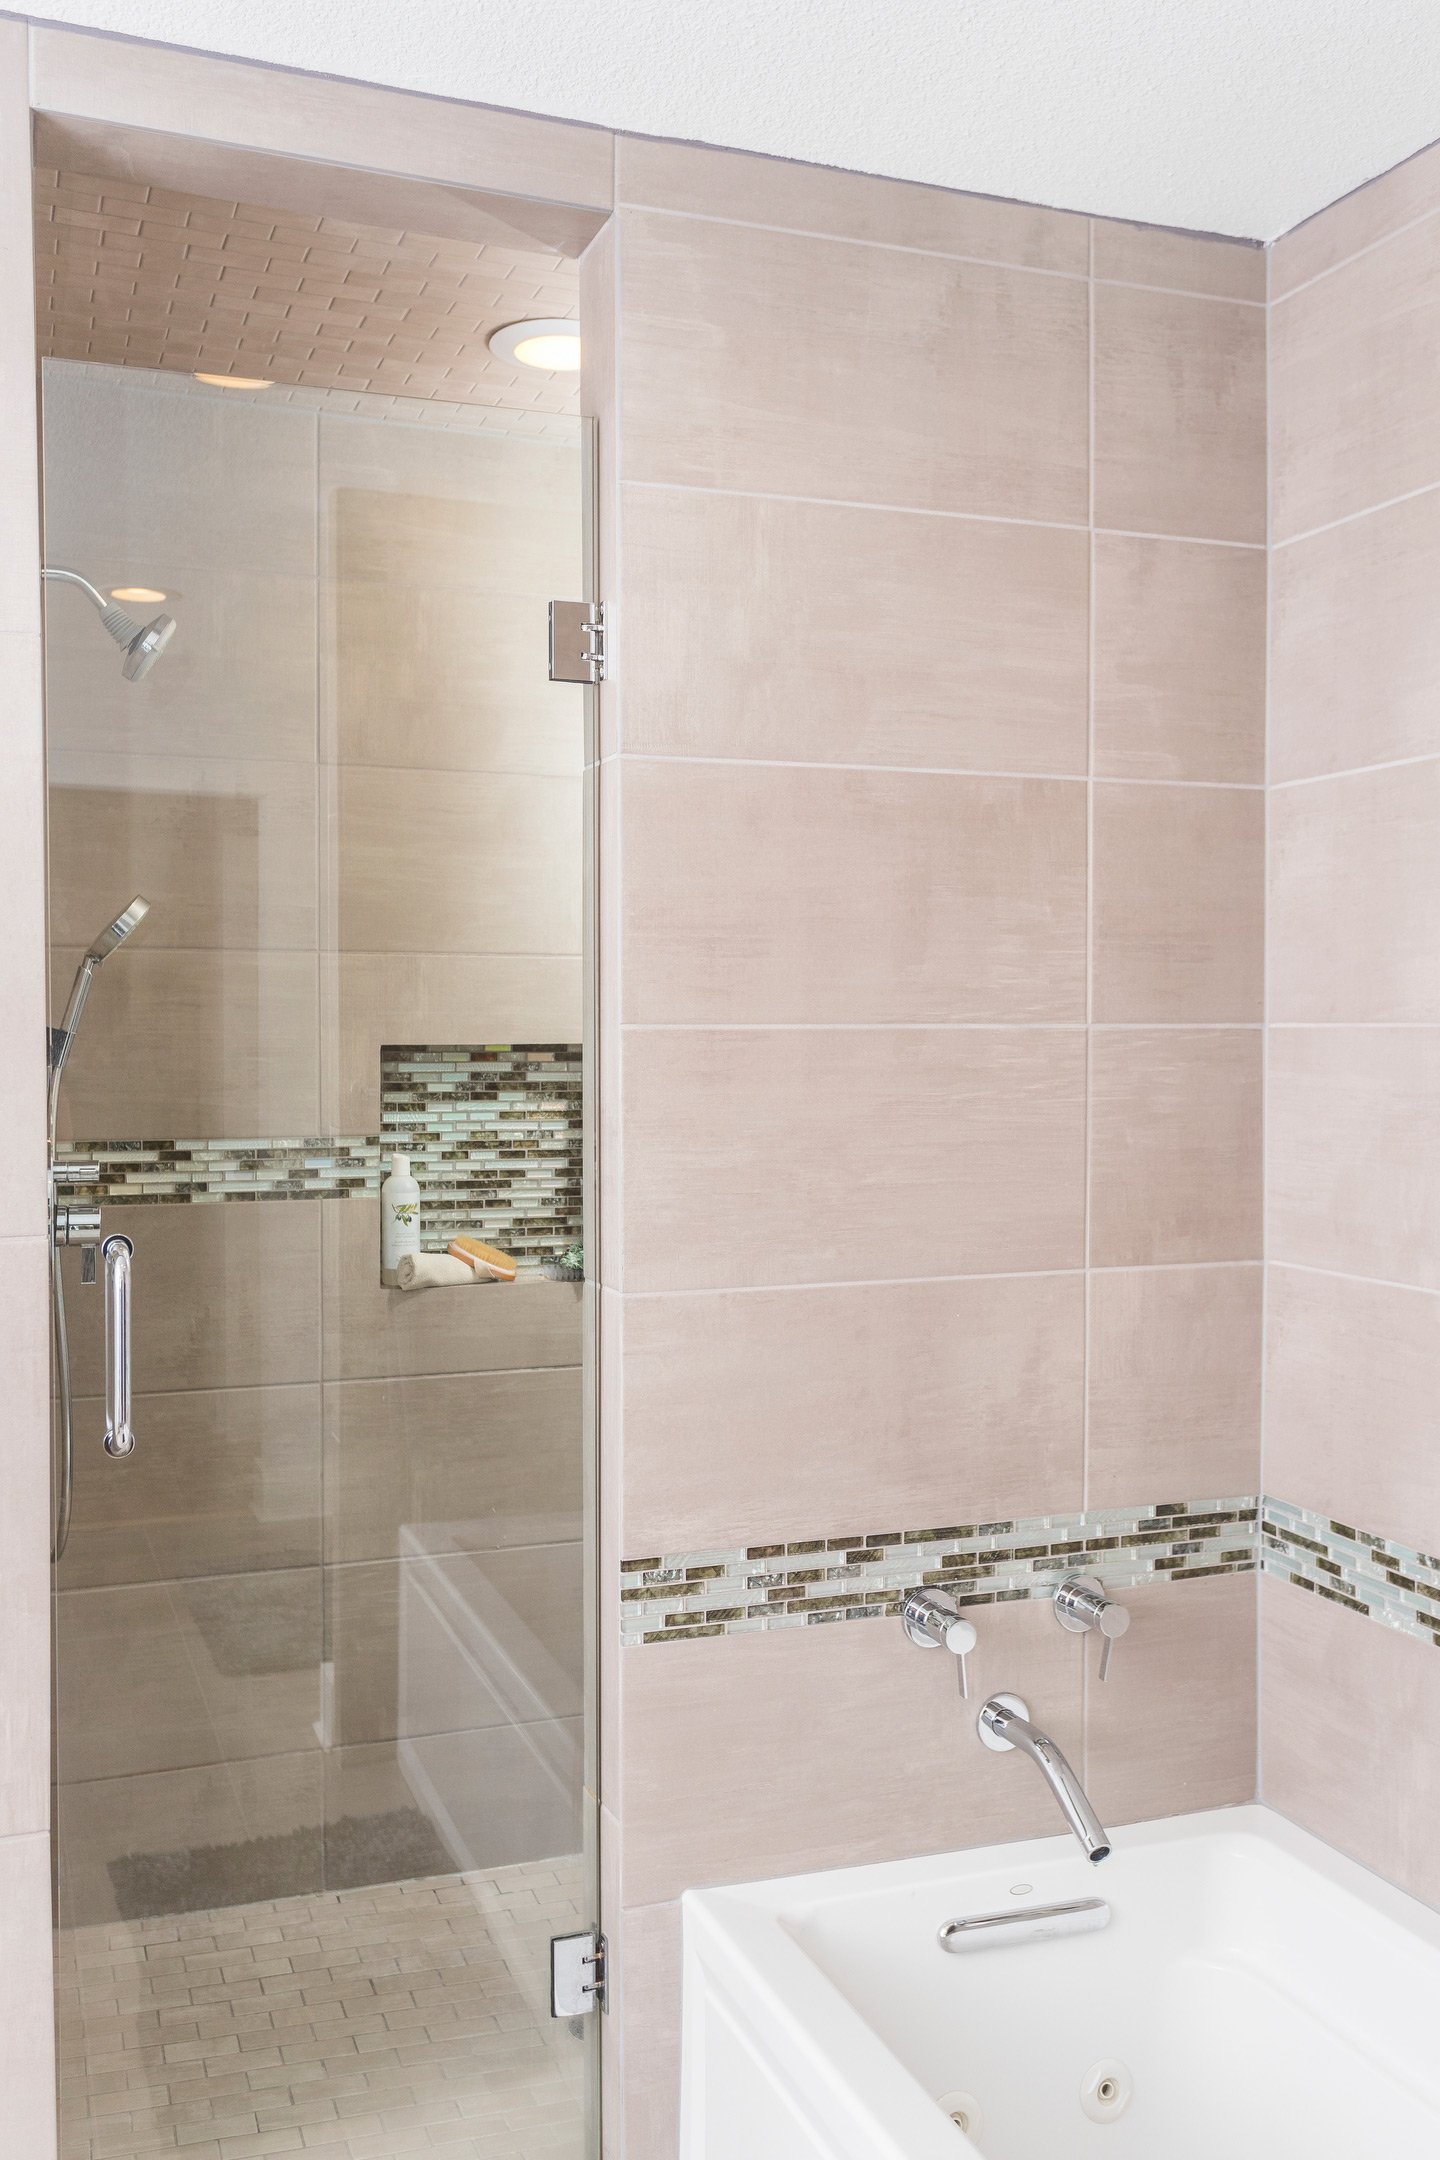 3 Bathroom Tile Trends You Can Expect in 2021